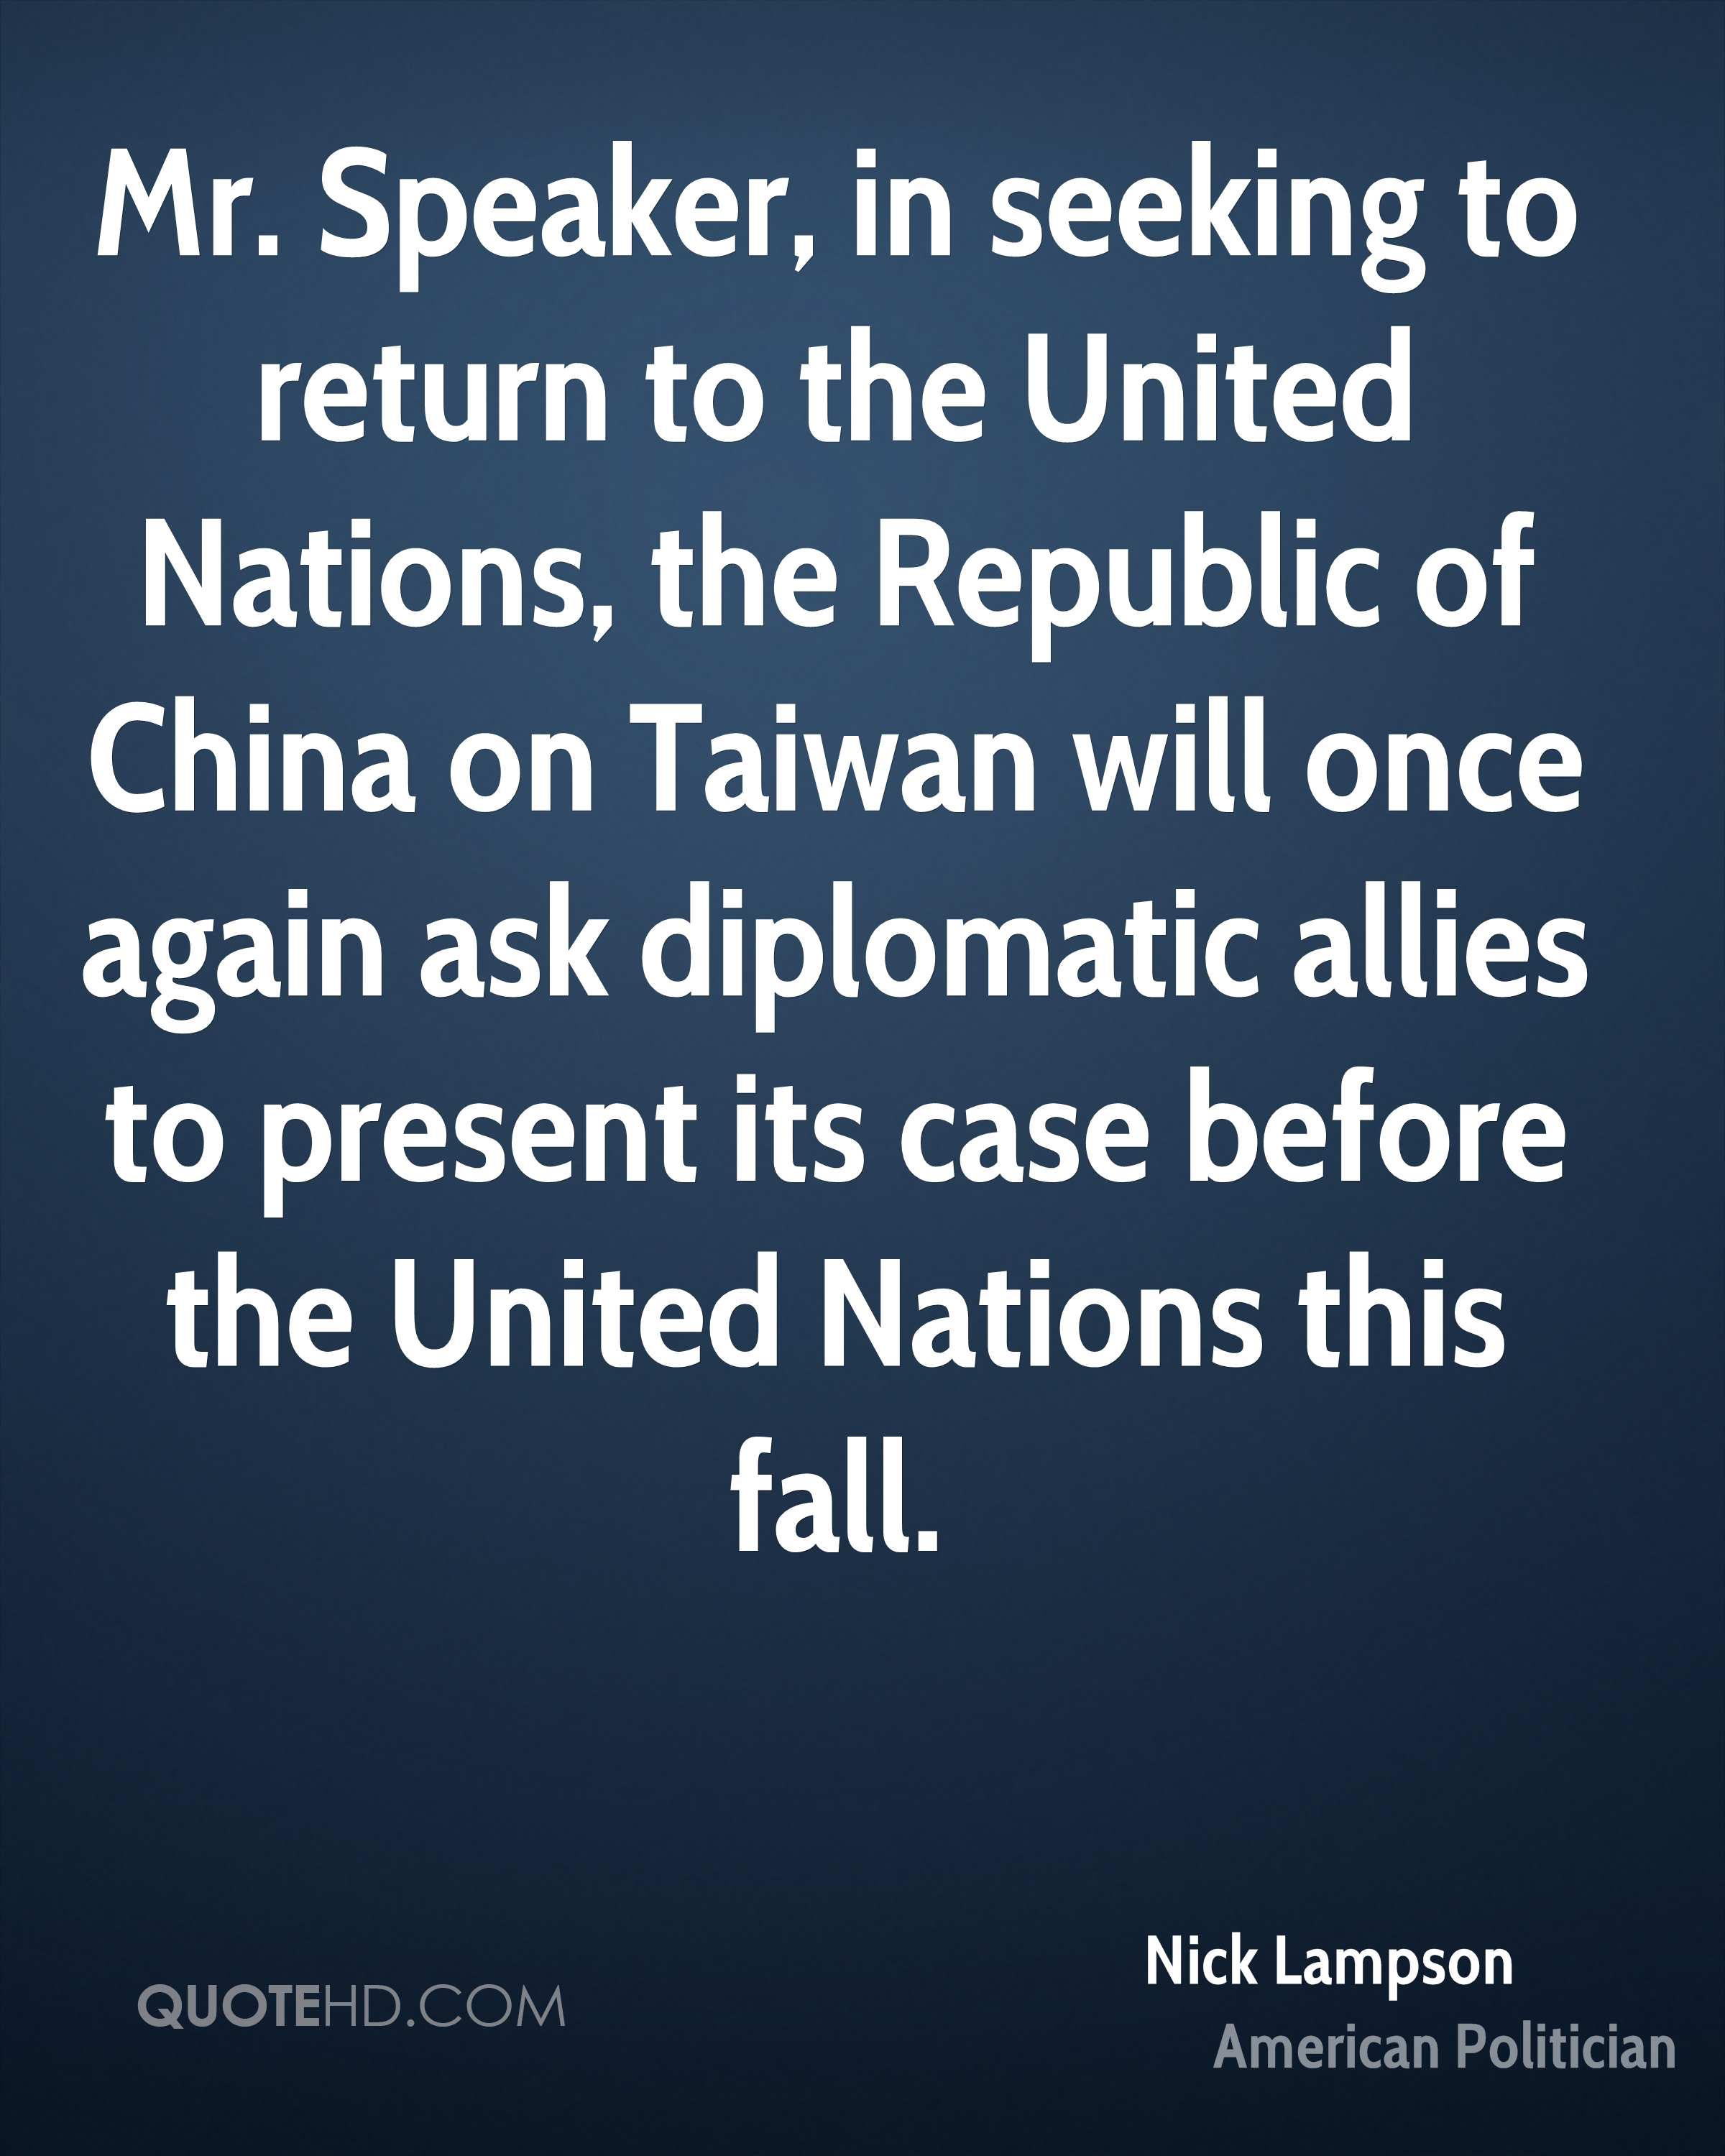 Mr. Speaker, in seeking to return to the United Nations, the Republic of China on Taiwan will once again ask diplomatic allies to present its case before the United Nations this fall.